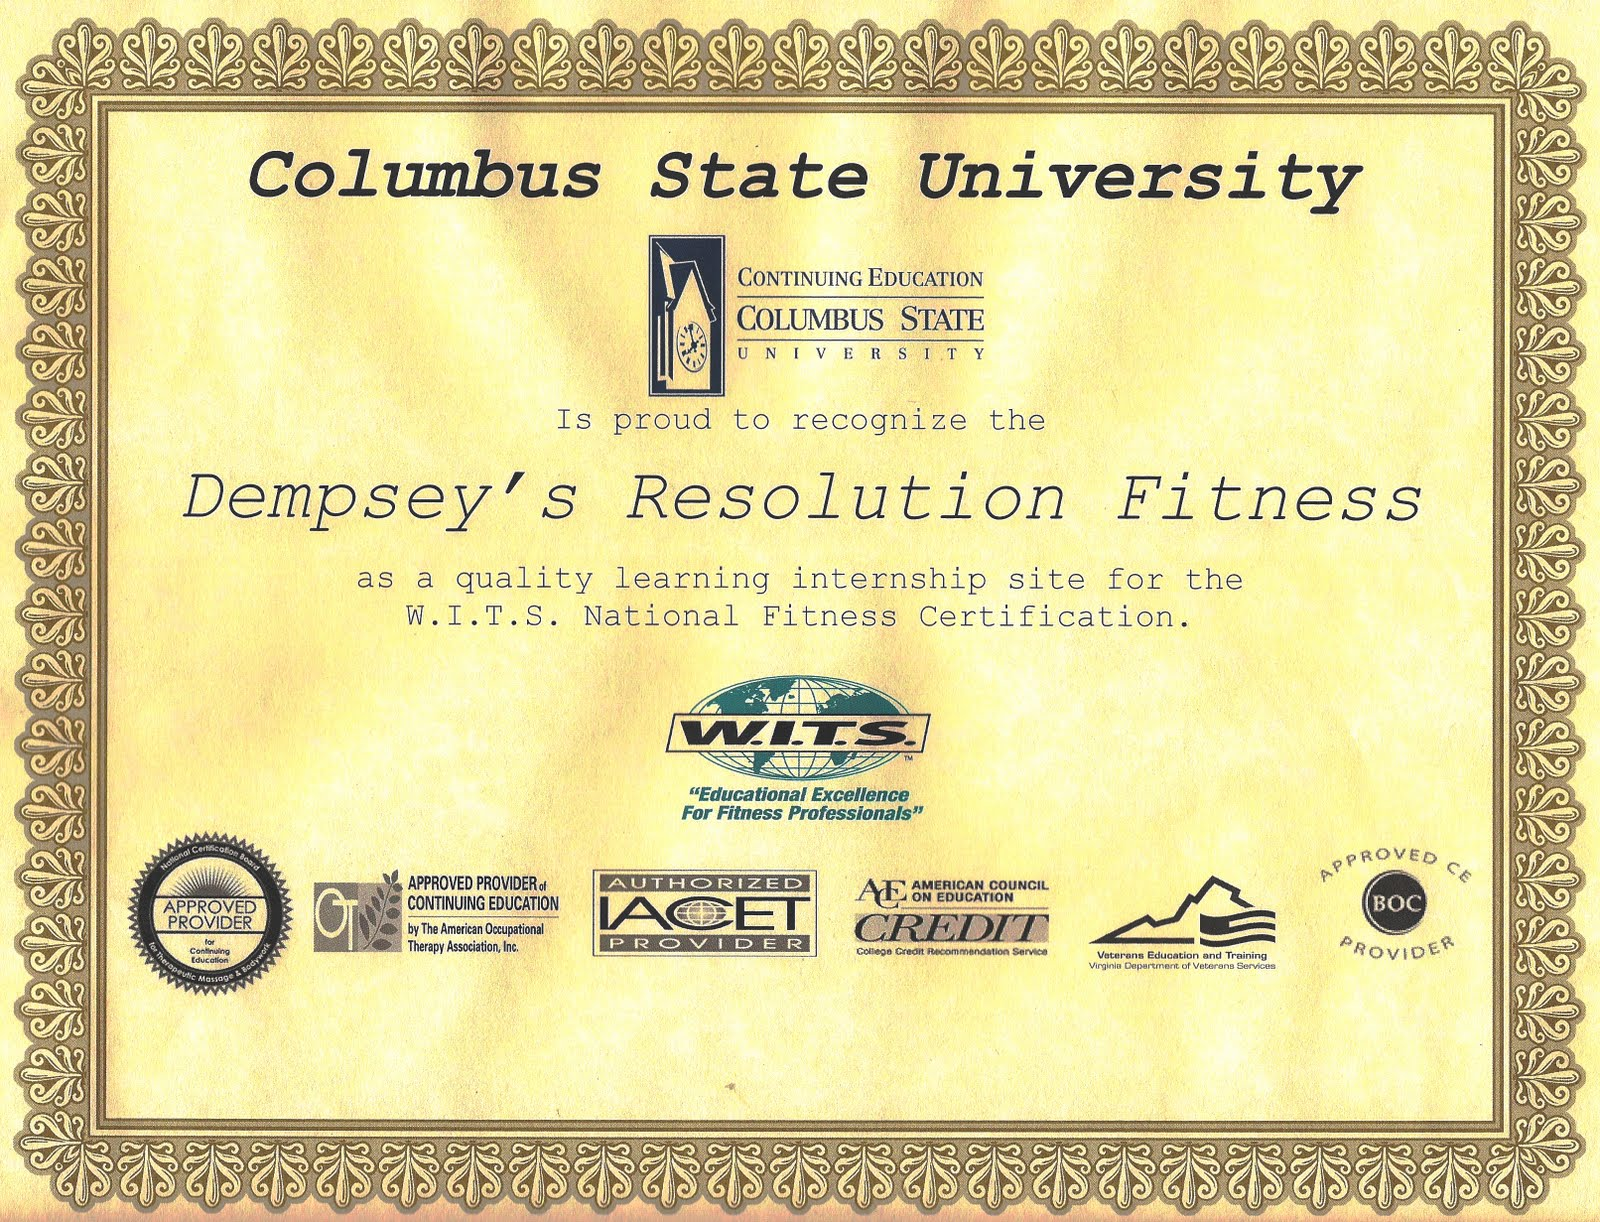 Dempseys Resolution Fitness July 2010